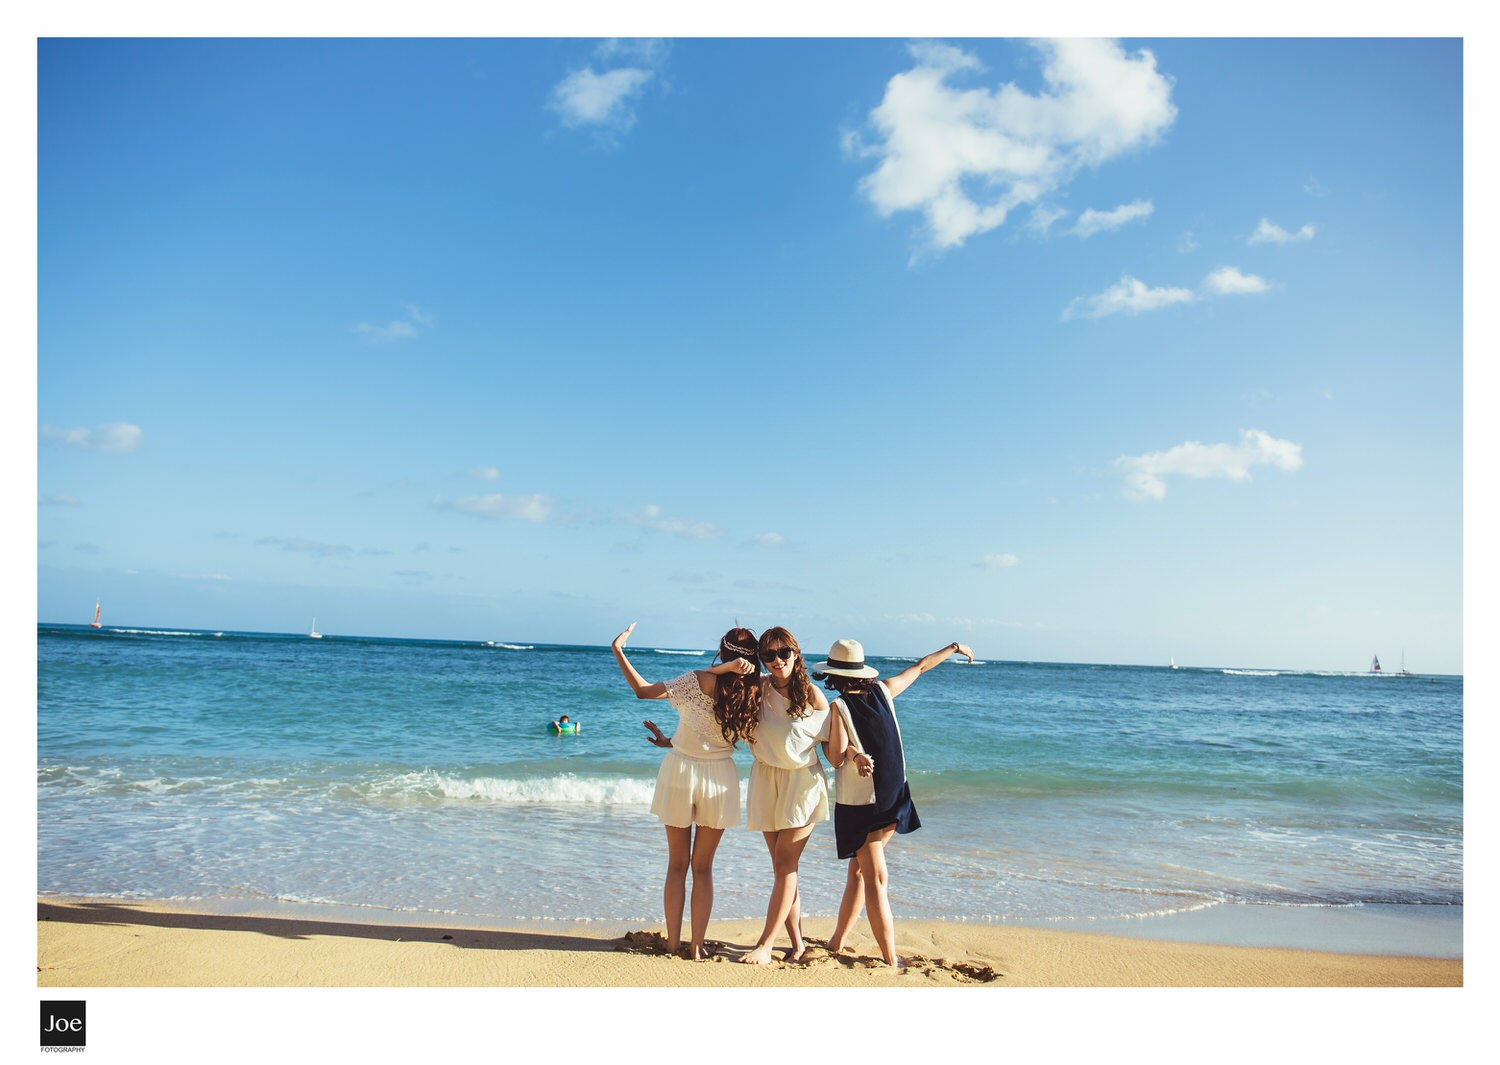 118-waikiki-beach-hawaii-pre-wedding-tiffany-tony-joe-fotography.jpg